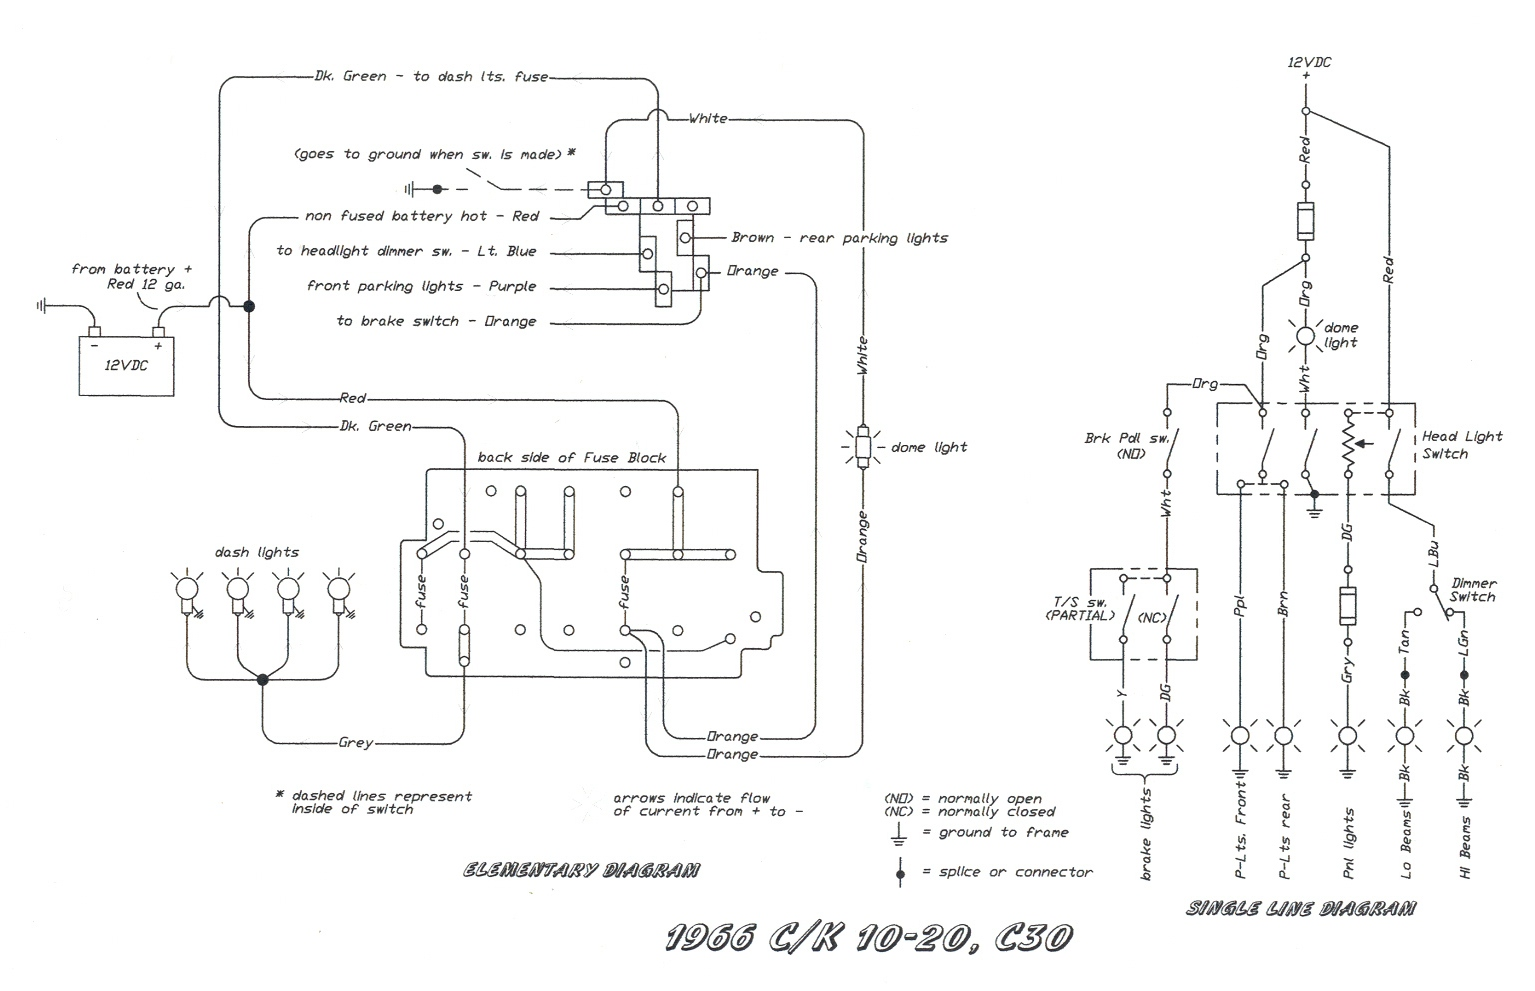 small resolution of dimmer switch wiring diagram gmc wiring diagram blog 1959 gmc wiring diagram wiring diagram page dimmer